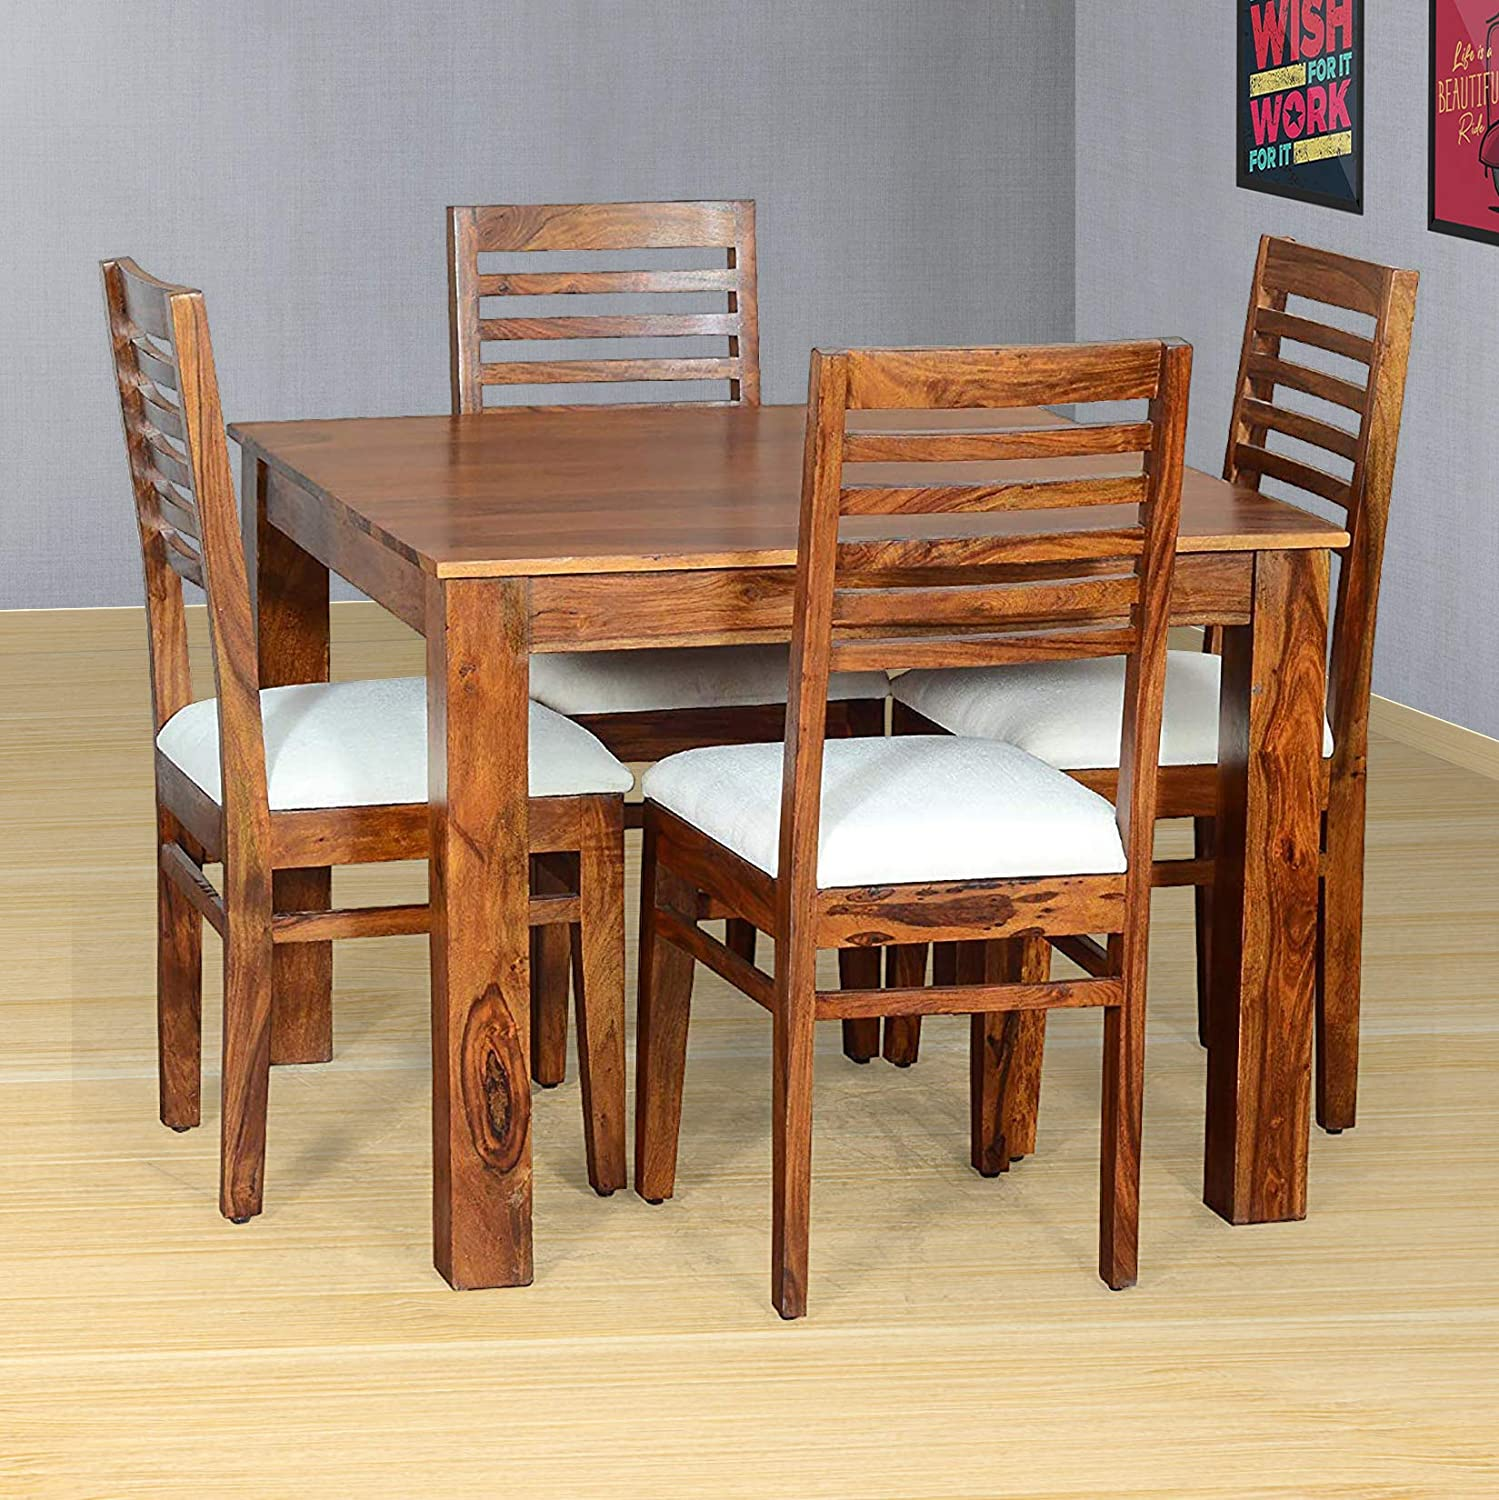 MH Decoart Solid Sheesham Wood 9 Seater Dining Table Set with 9 Cushion  Chairs for Dining Room Living Room Wooden Furniture Dining Room Set Teak  ...